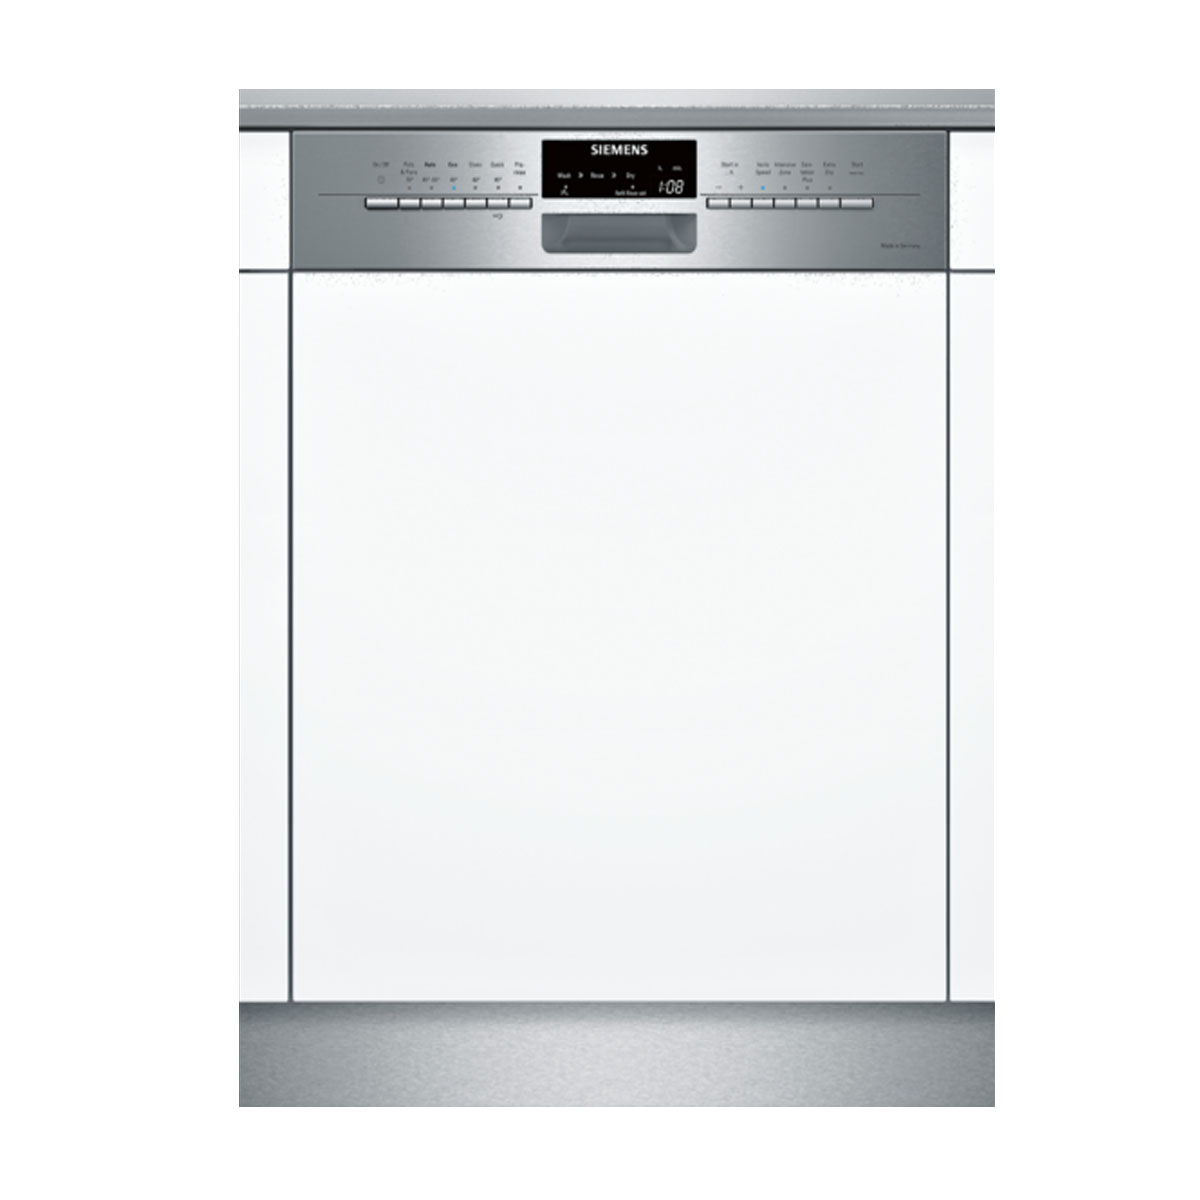 Siemens SN56M582AU iQ500 Semi-Integrated Dishwasher